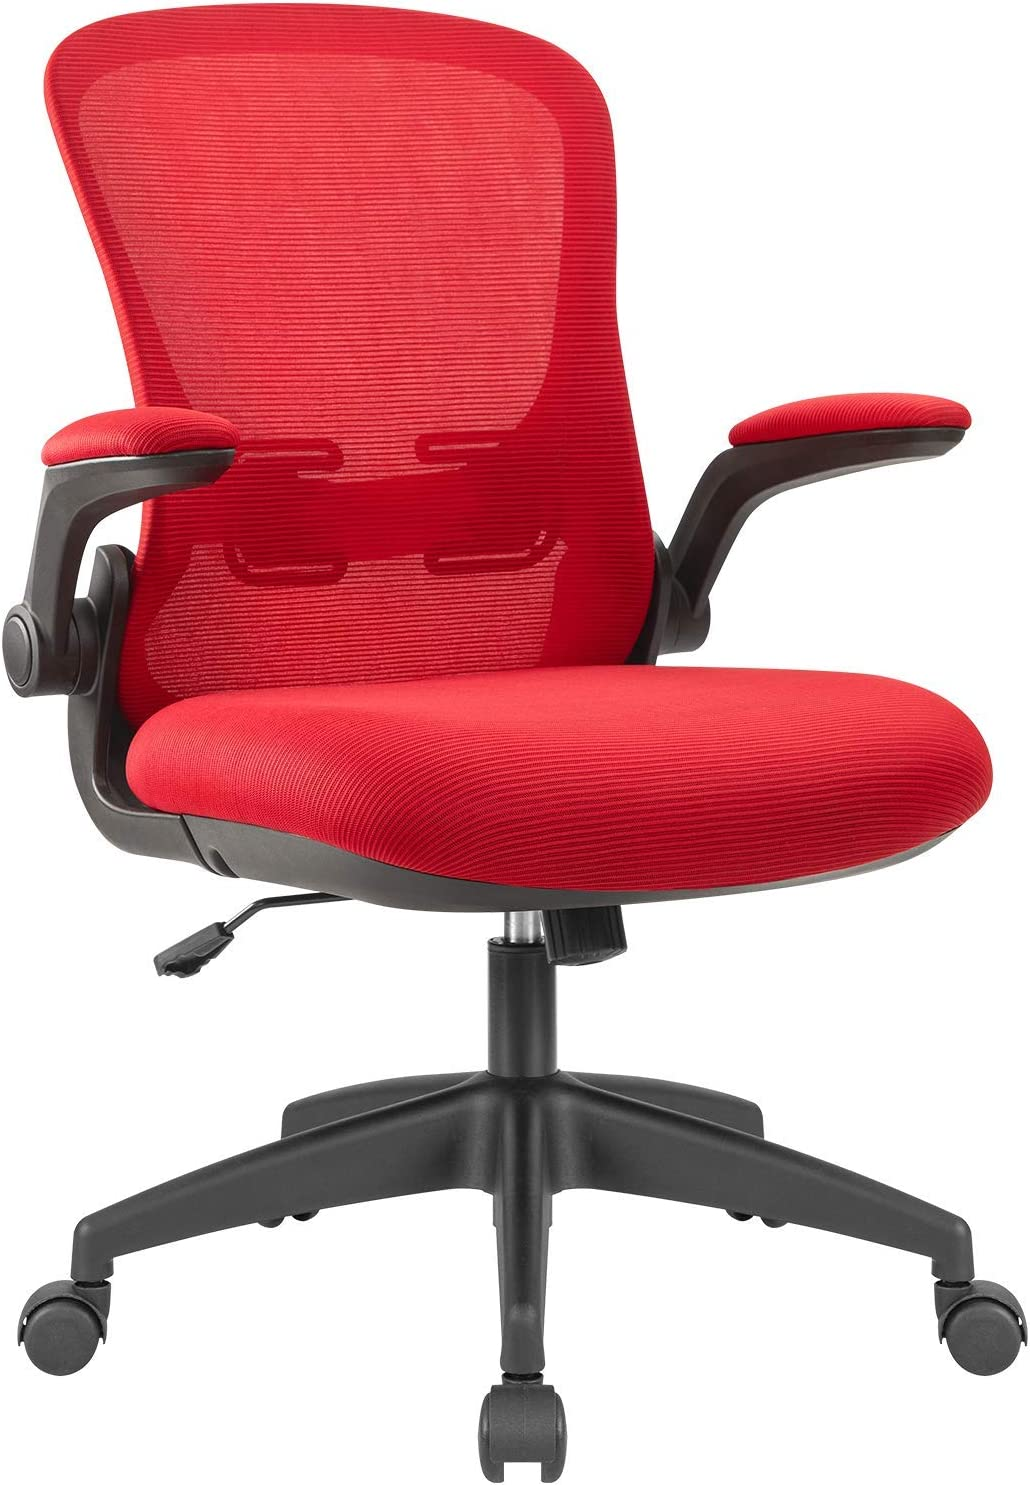 Devoko Office Desk Chair Ergonomic Mesh Chair Lumbar Support with Flip-up Arms and Adjustable Height (Red)